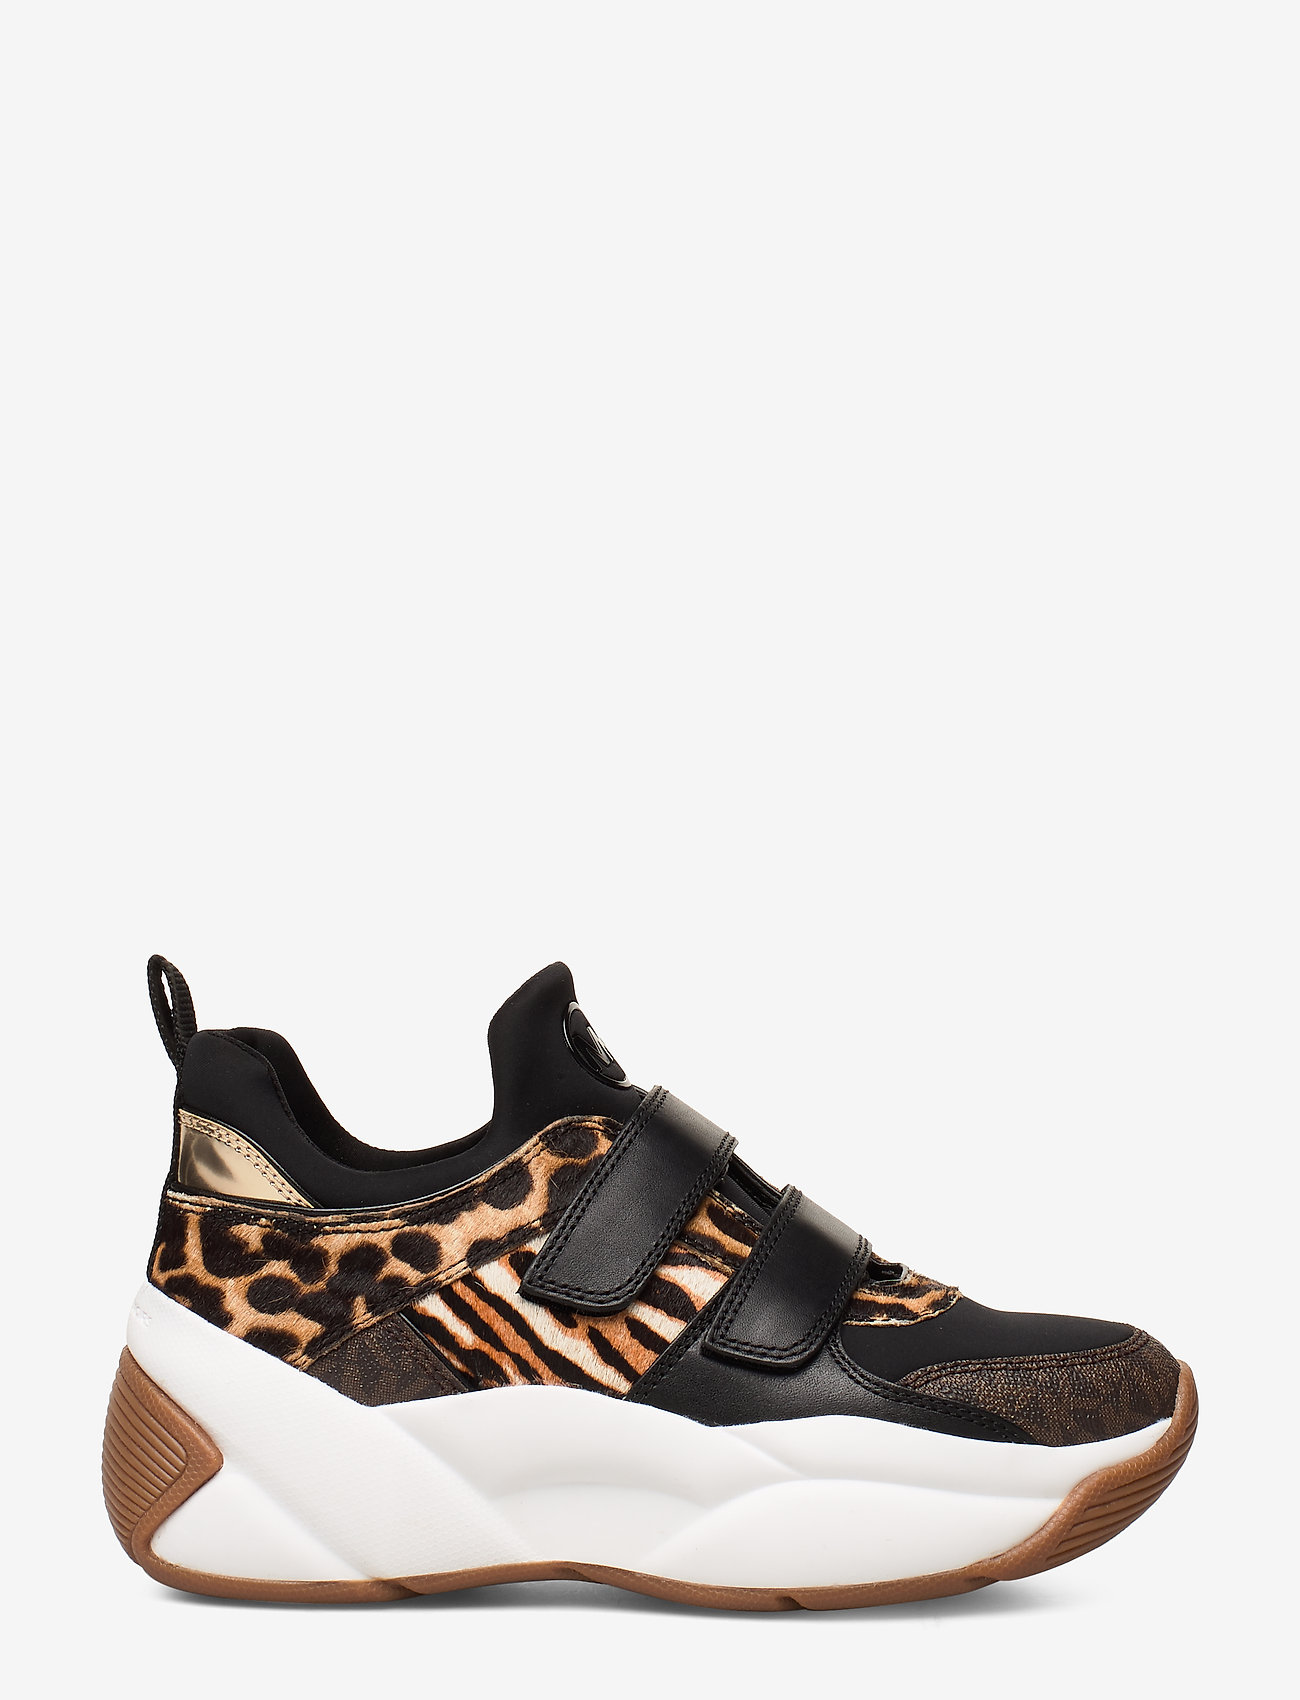 Michael Kors Shoes - KEELEY TRAINER - chunky sneakers - dk camel